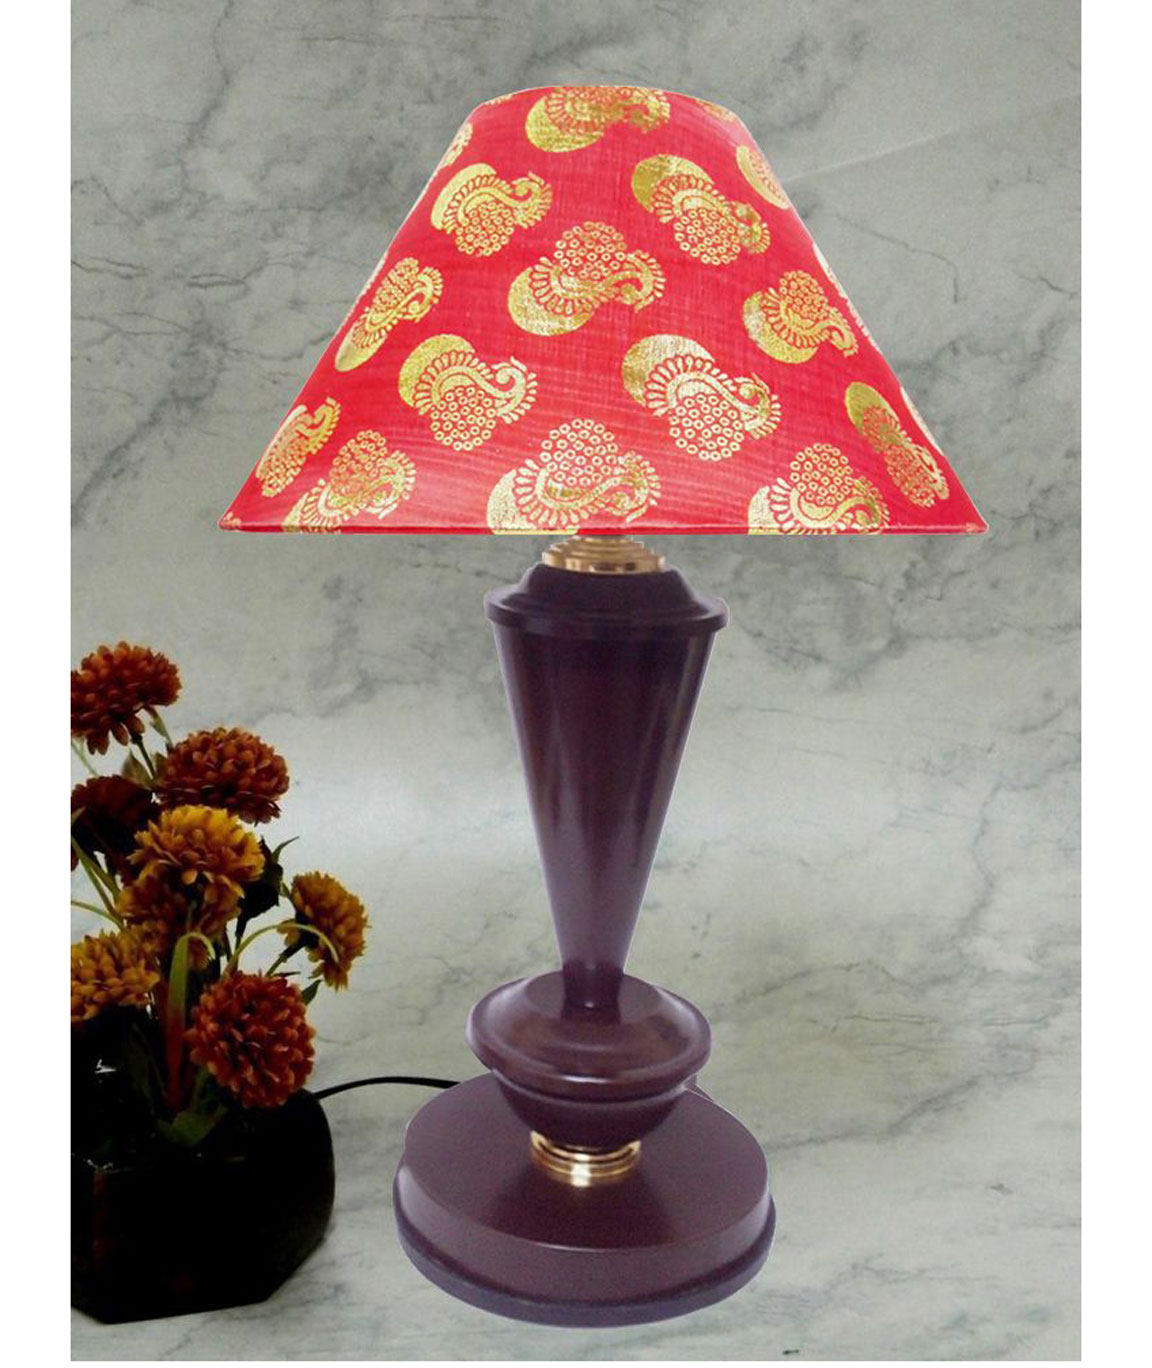 RDC Brown with Golden Base Table Lamp with 10 Inches Round Red Golden Designer Lamp Shade